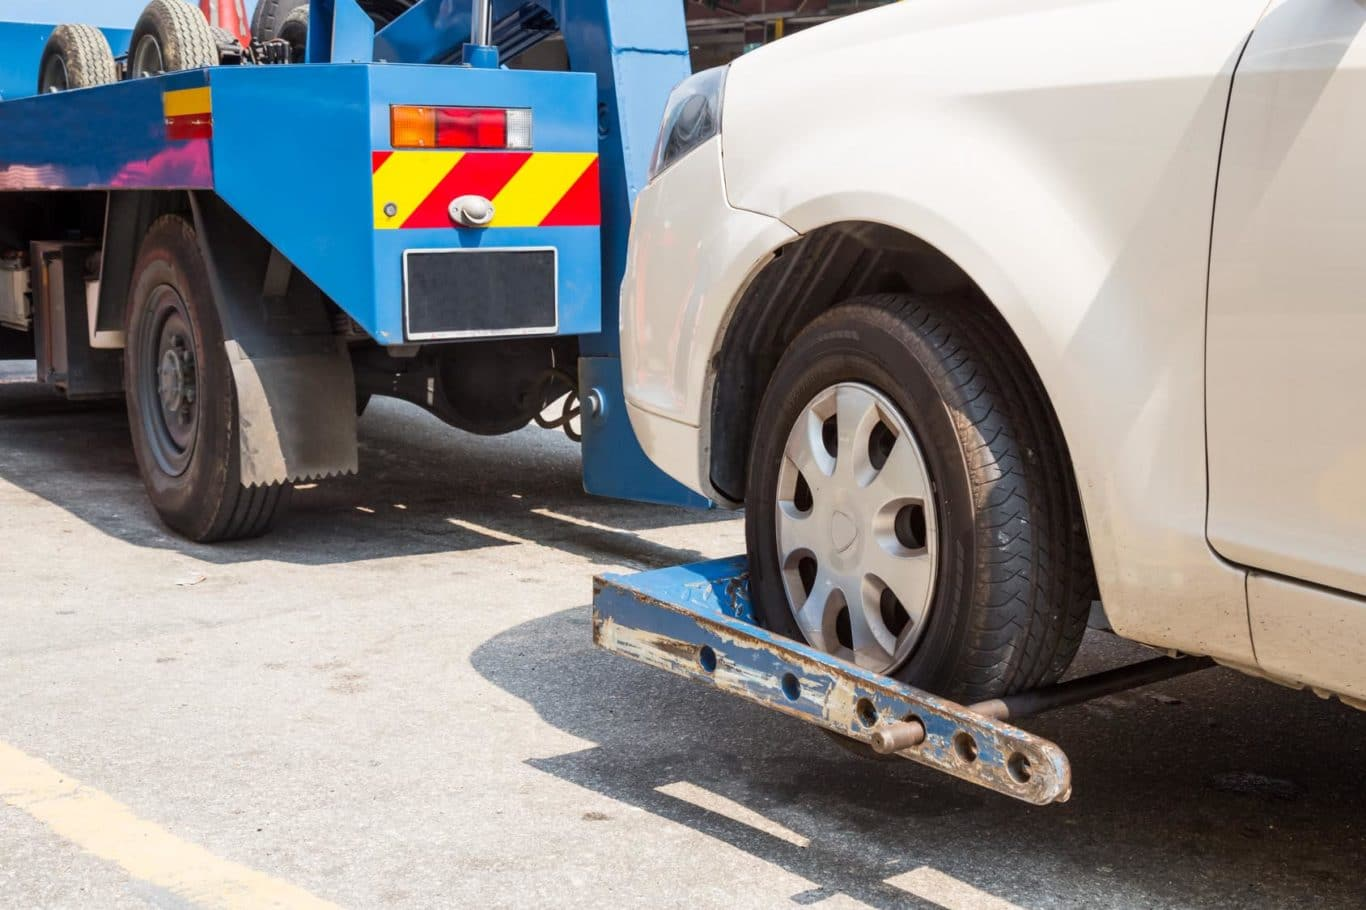 Dundalk expert Breakdown Assistance services